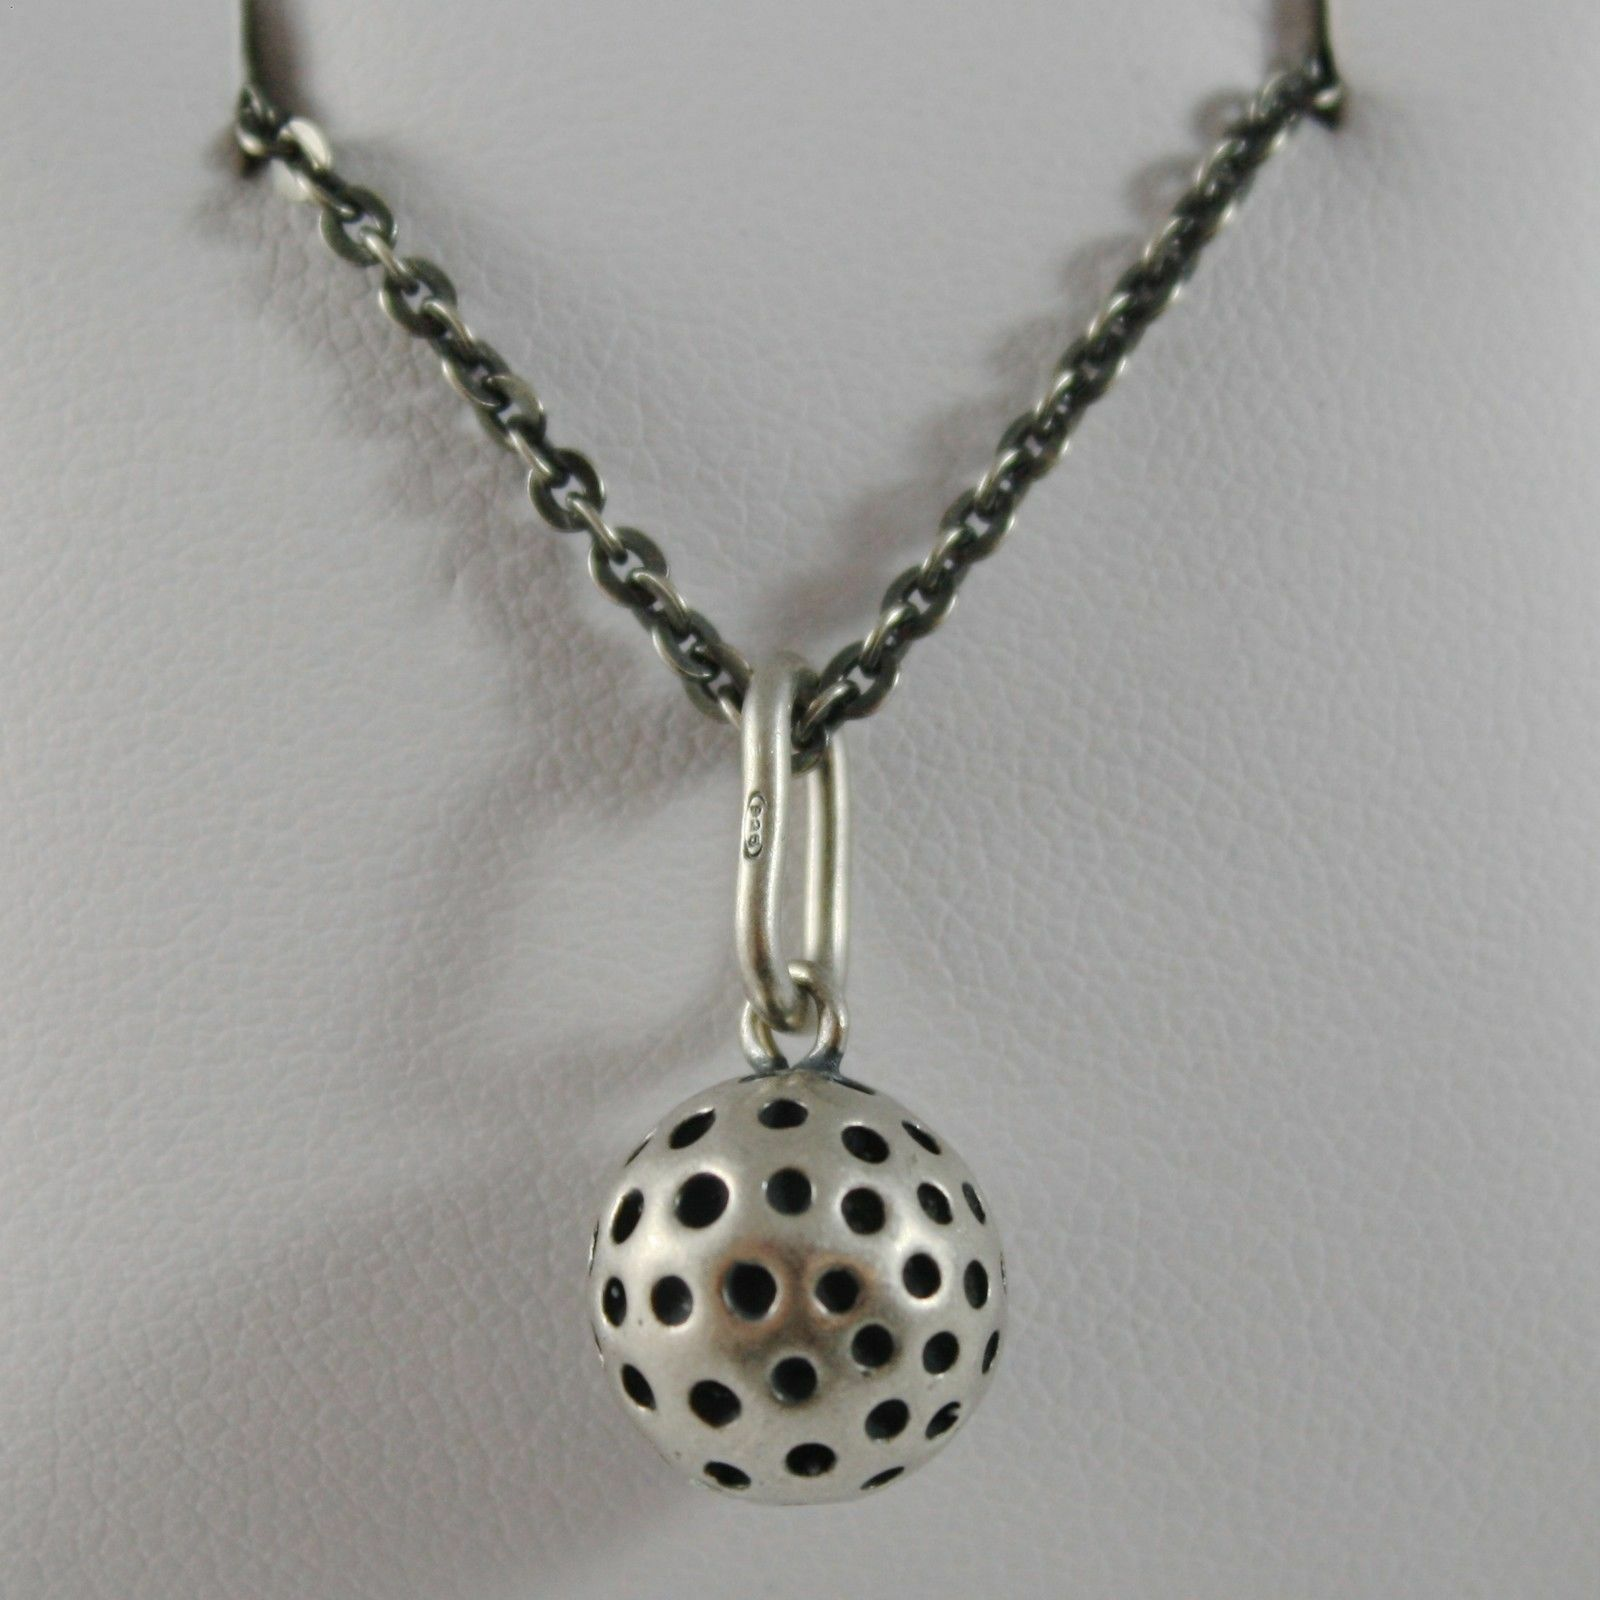 925 Sterling Silver Necklace Burnished Pendant with Golf Ball Made in Italy